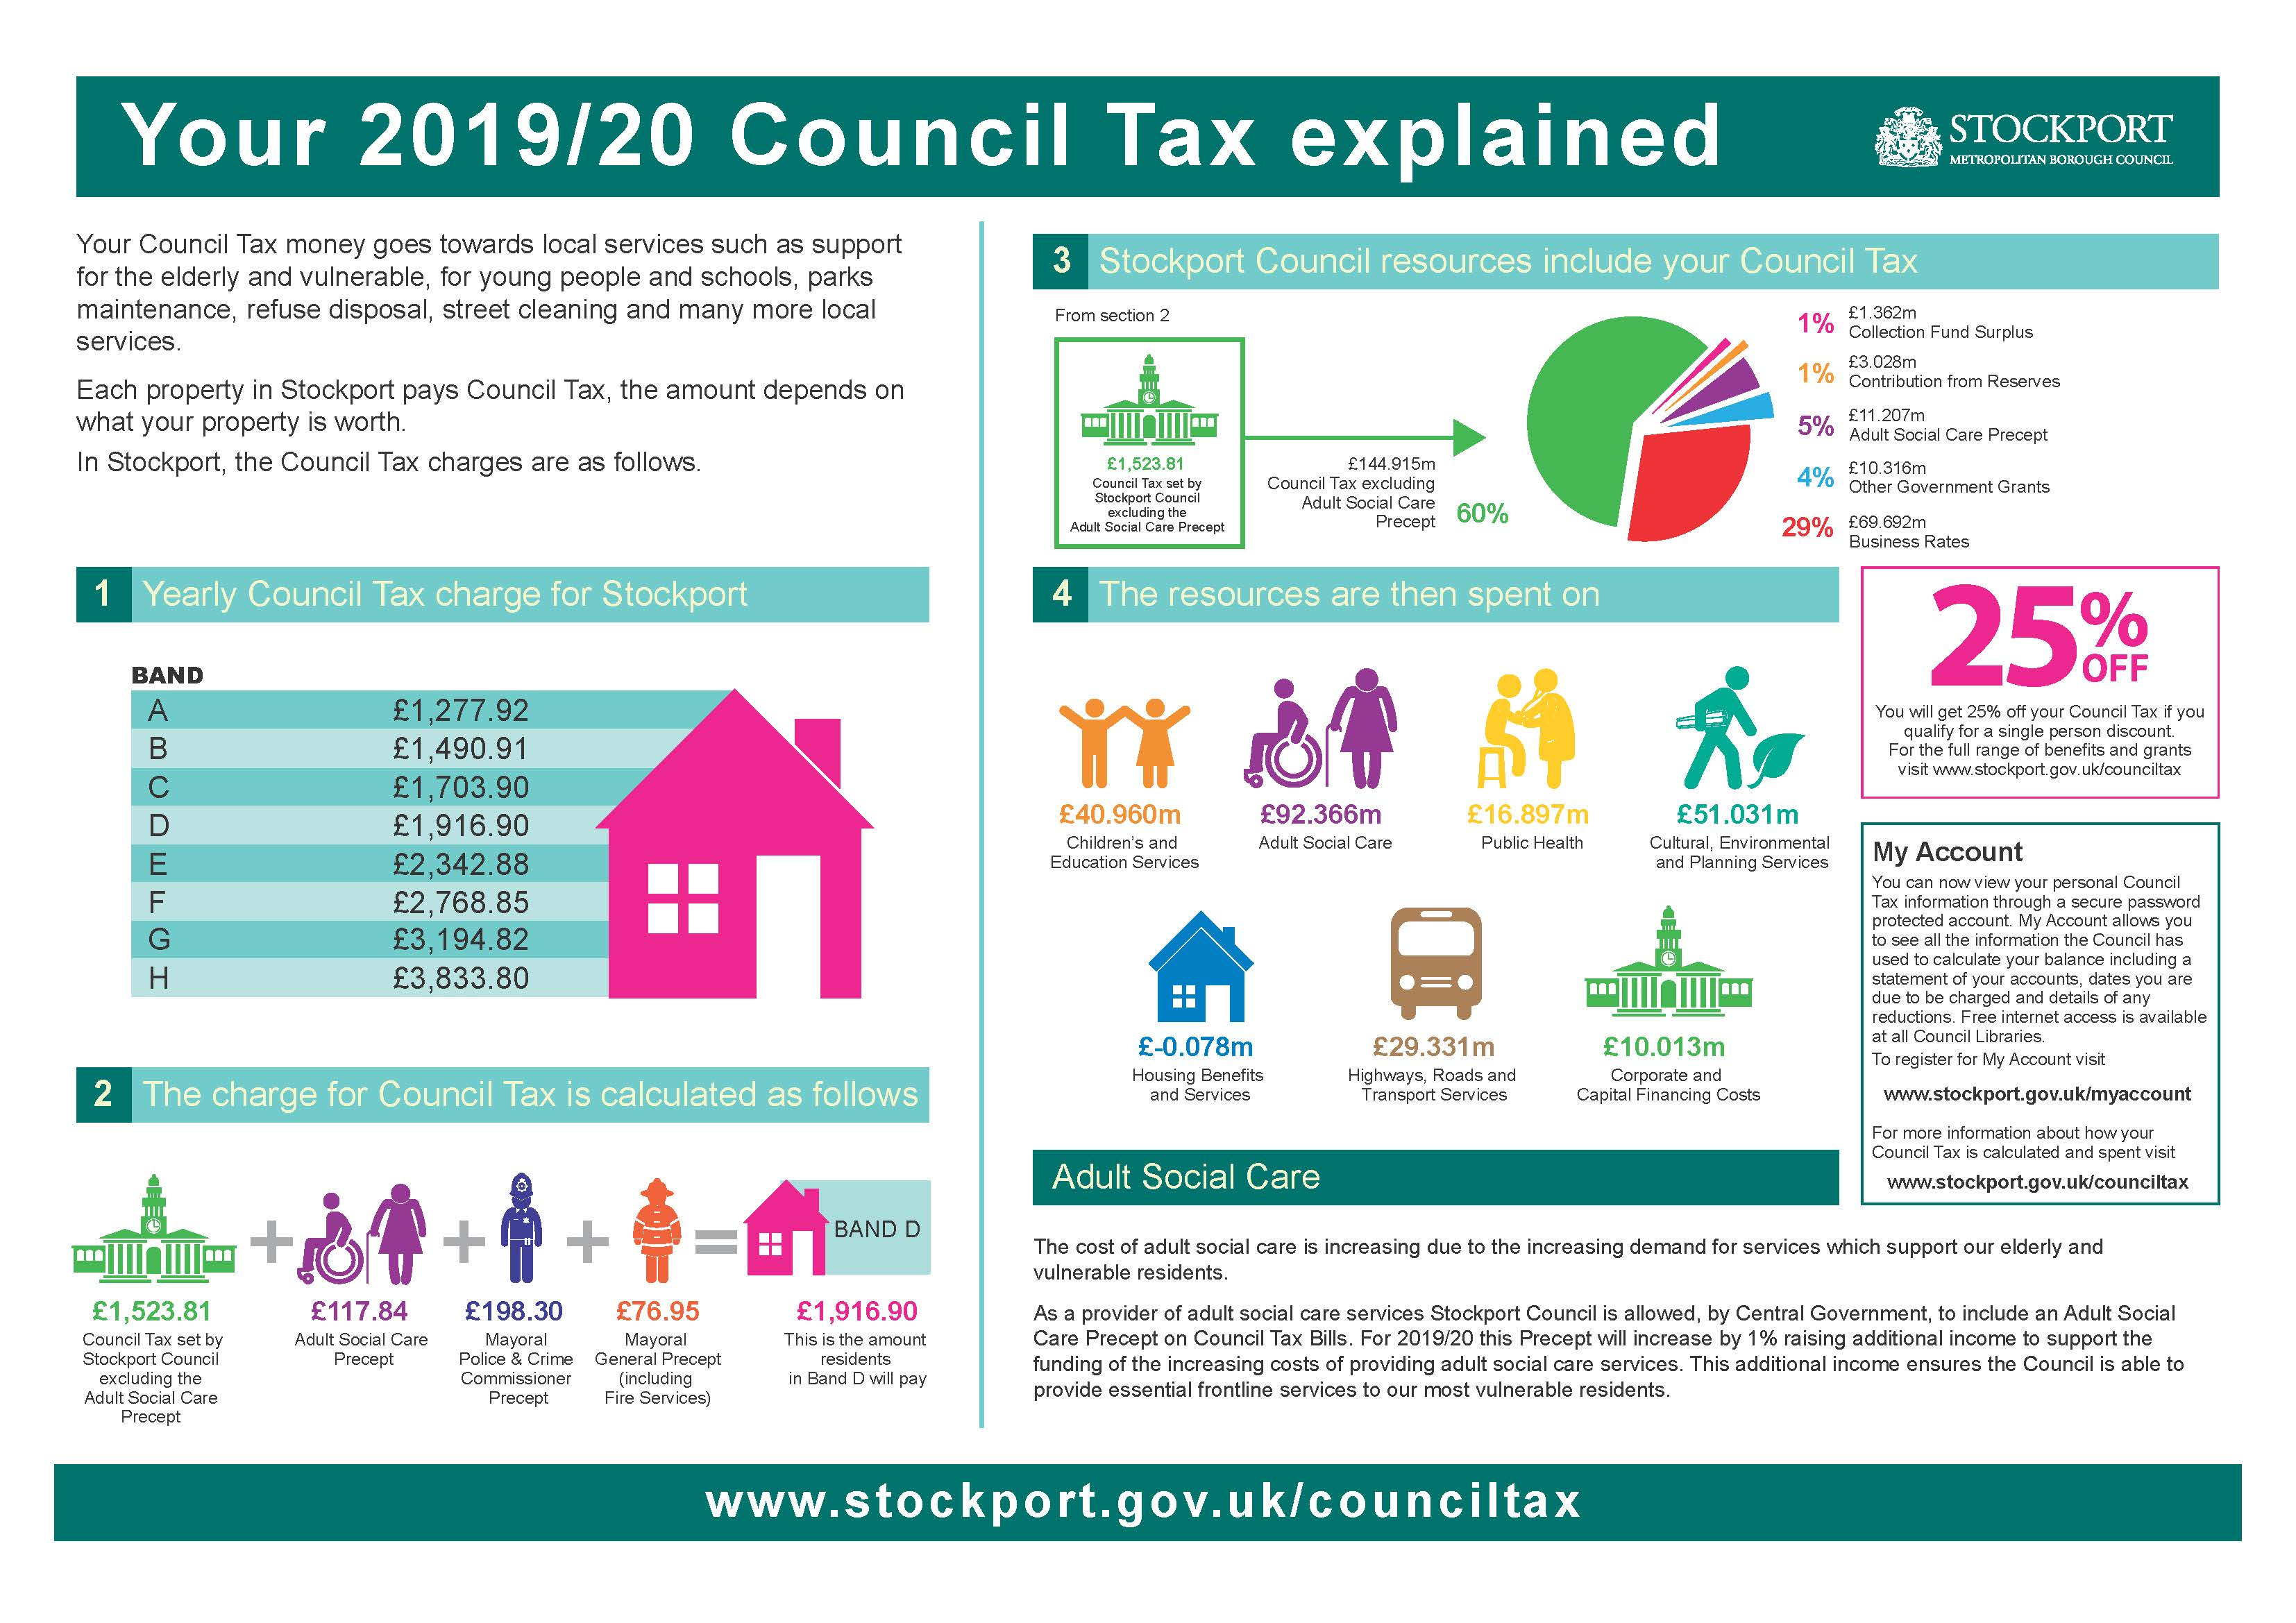 Council Tax 2019/20 explained